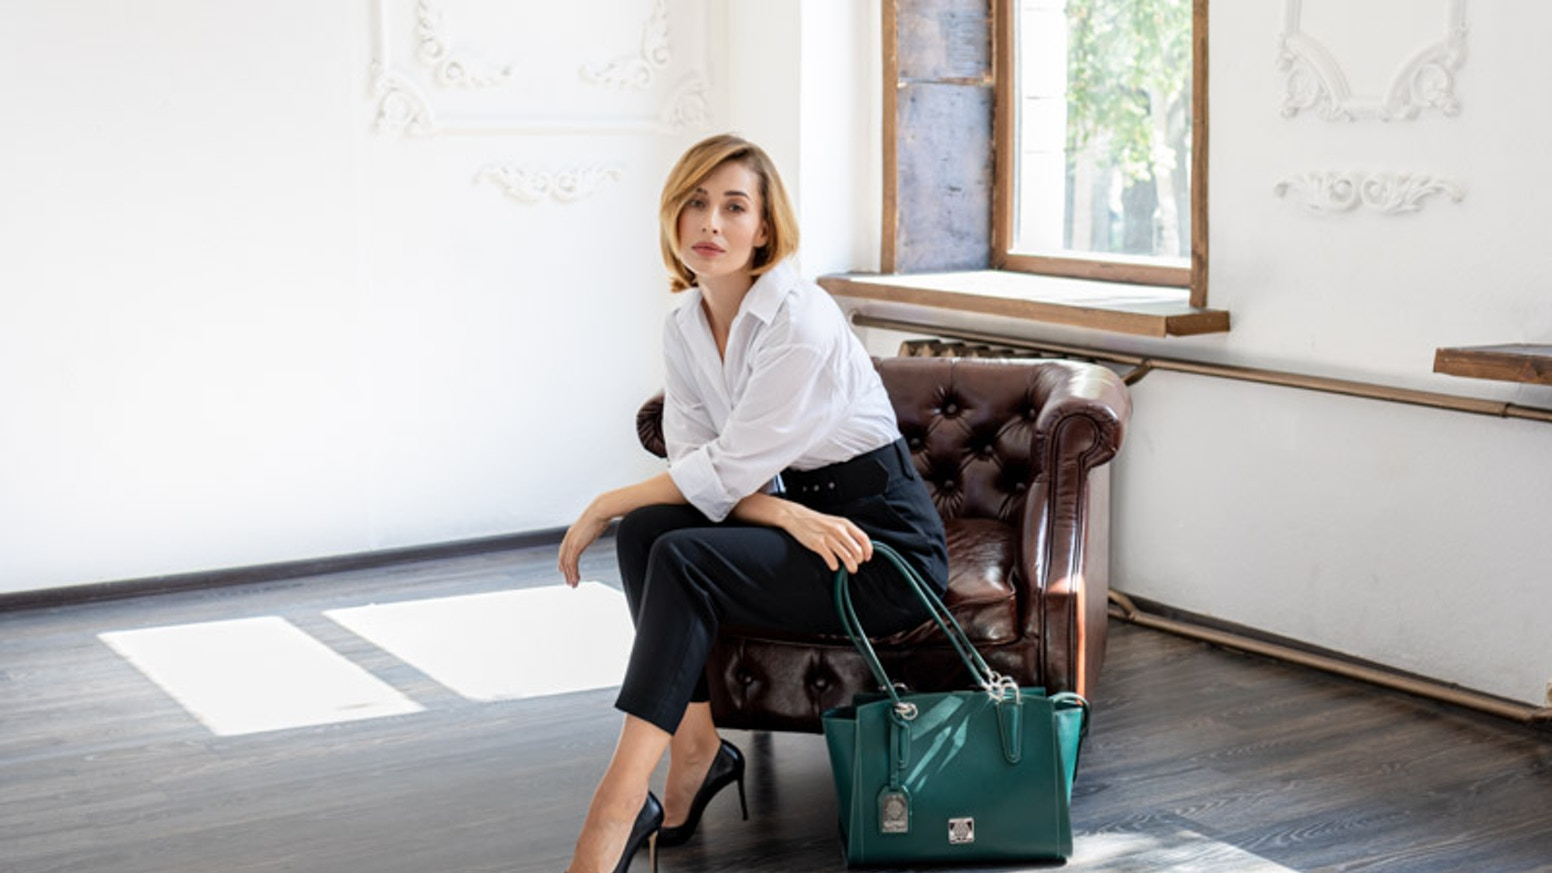 Meet the new collection of smart leather luxury Clover bags from clutch, backpack and tote to other exclusive handbags.